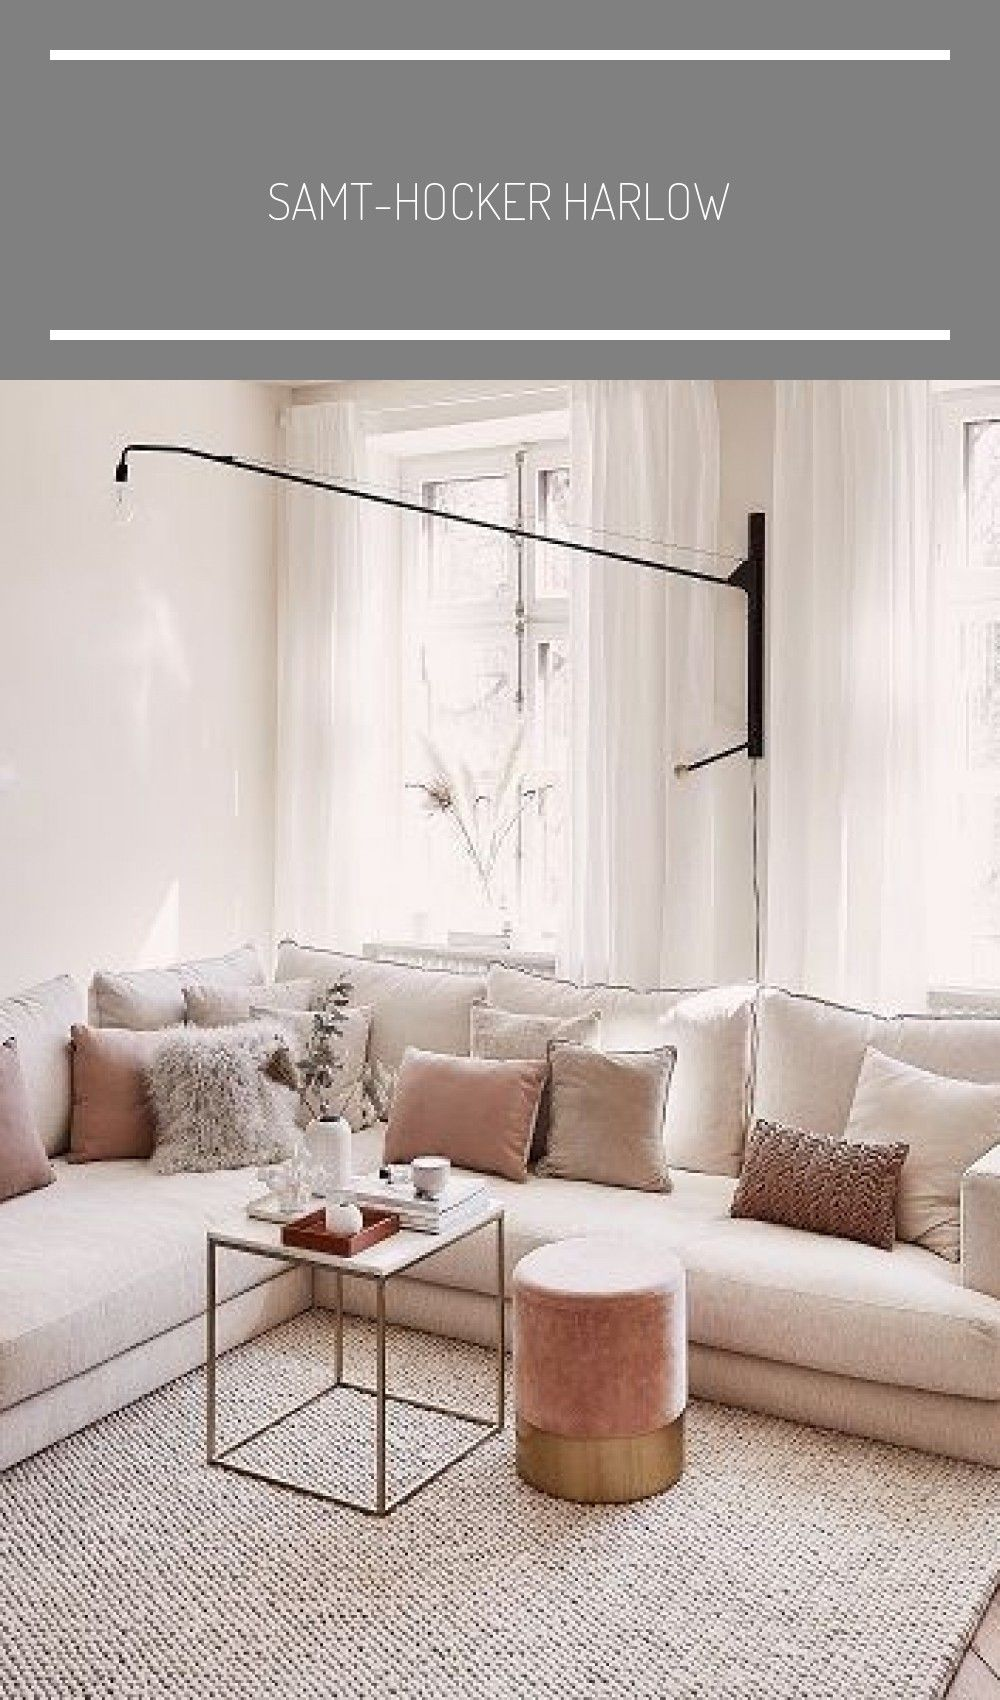 Pin By Jana Albruschat On Wohnen In 2020 Beige Couch Living Room Couches Living Room Apartment Beige Living Rooms